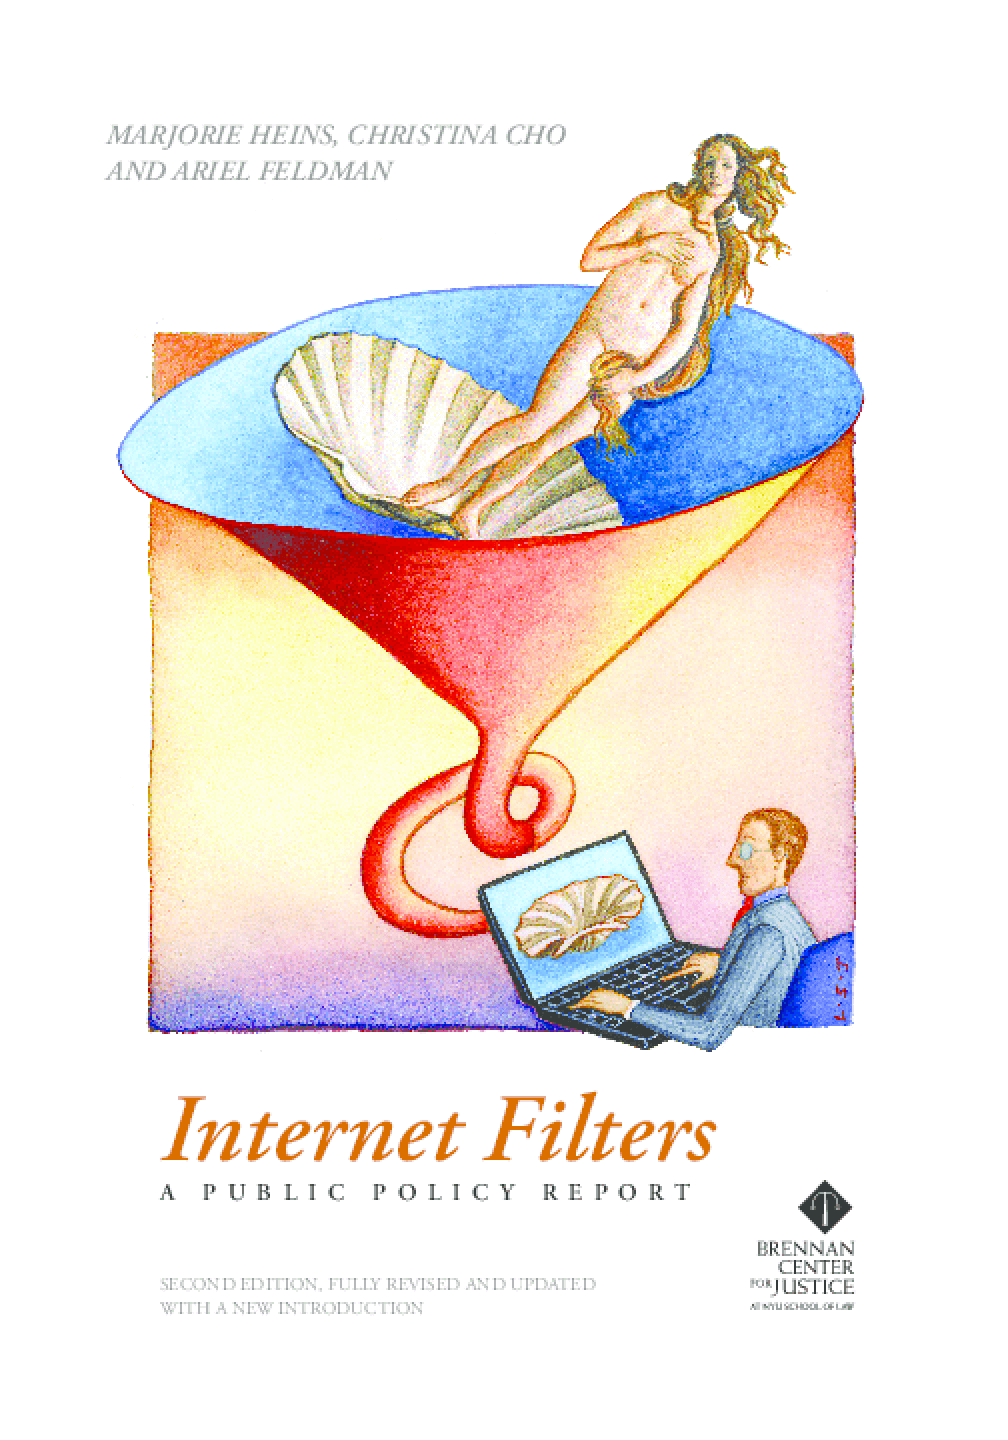 Internet Filters: A Public Policy Report (Second edition; fully revised and updated)